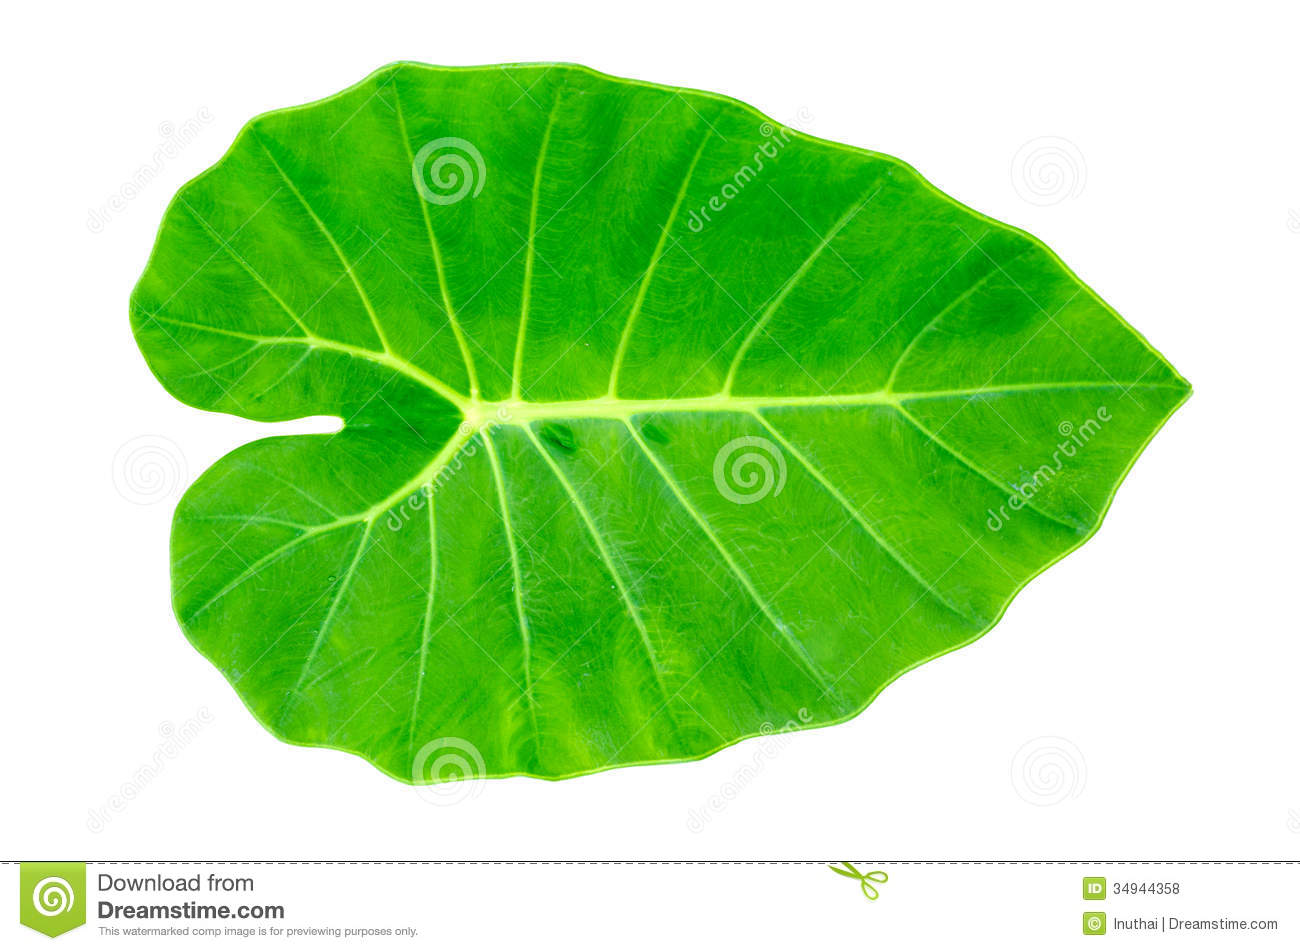 how to draw a green leaf